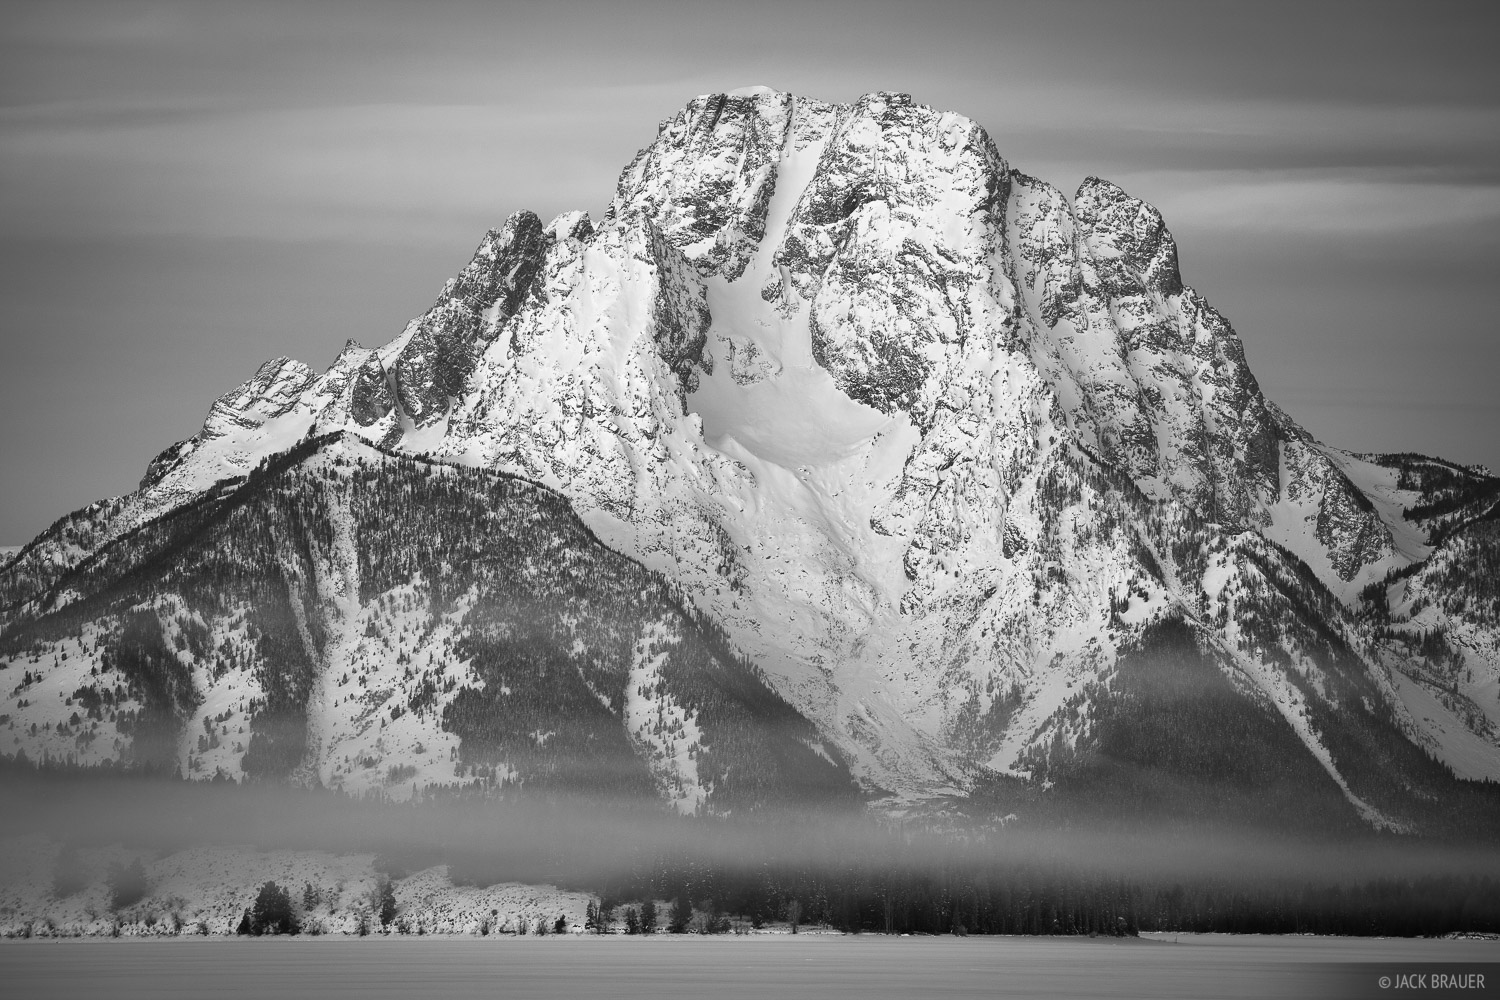 Jackson Lake, Tetons, Wyoming, bw, Mount Moran, Grand Teton National Park, photo